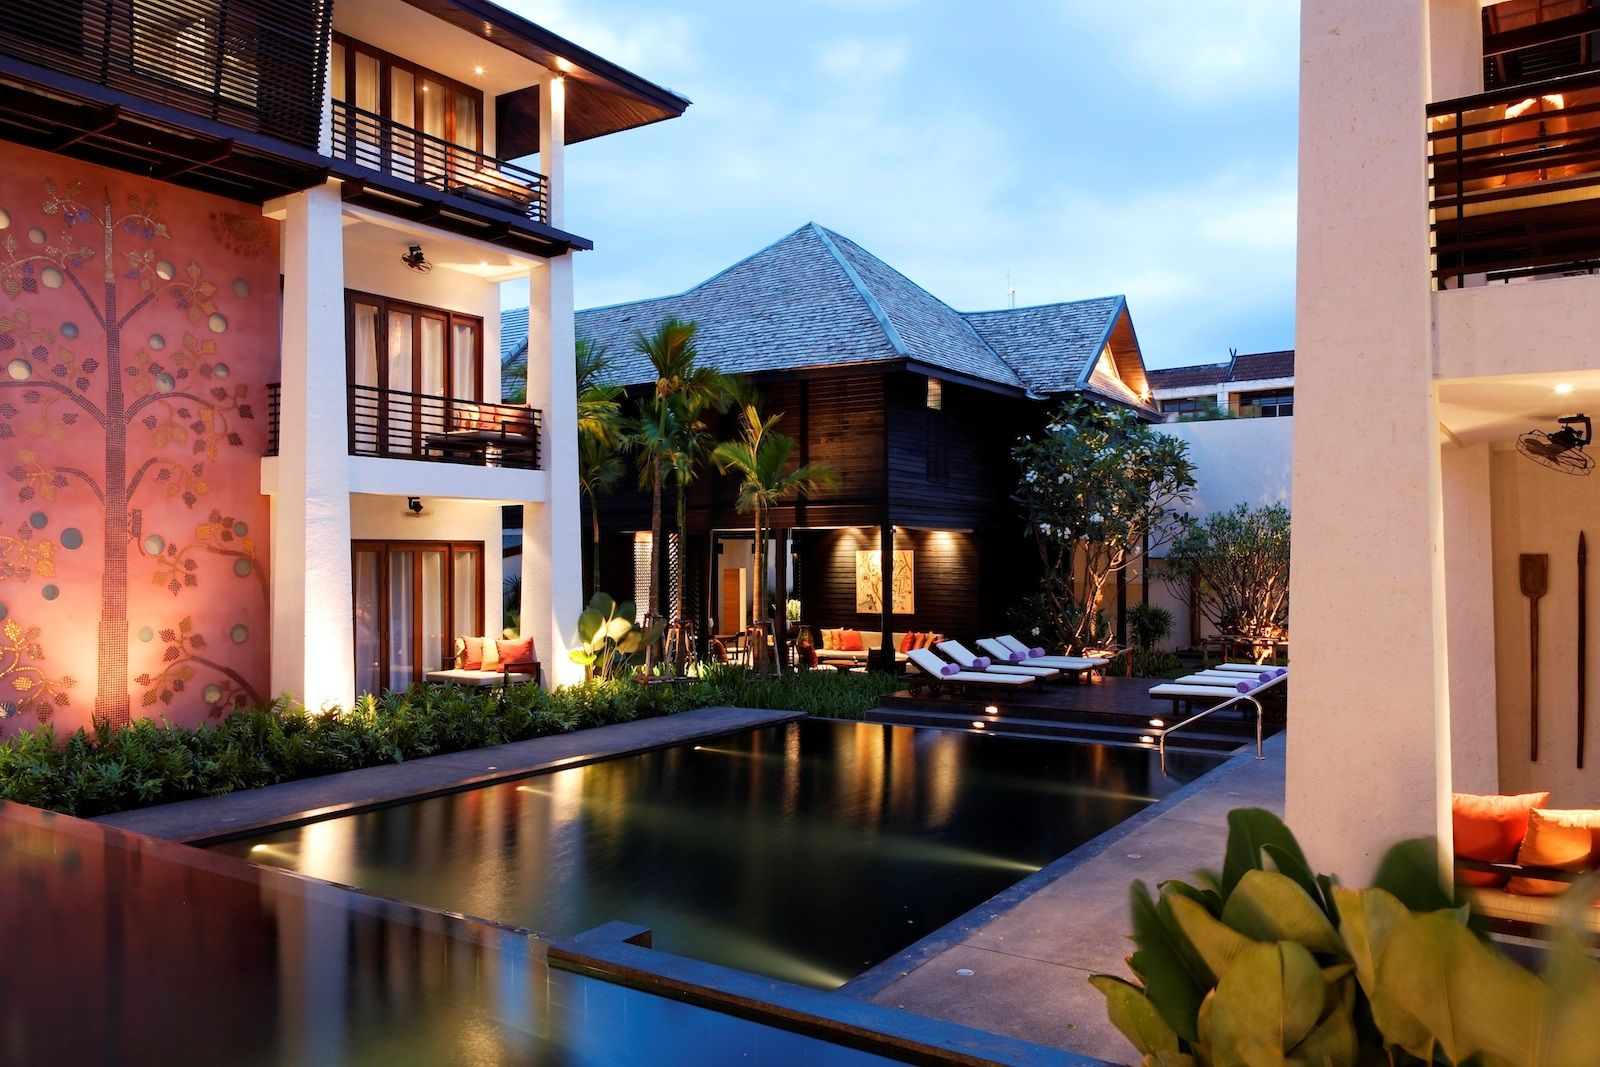 Chiang Mai Luxury Hotel Thailand 4 Star Boutique U